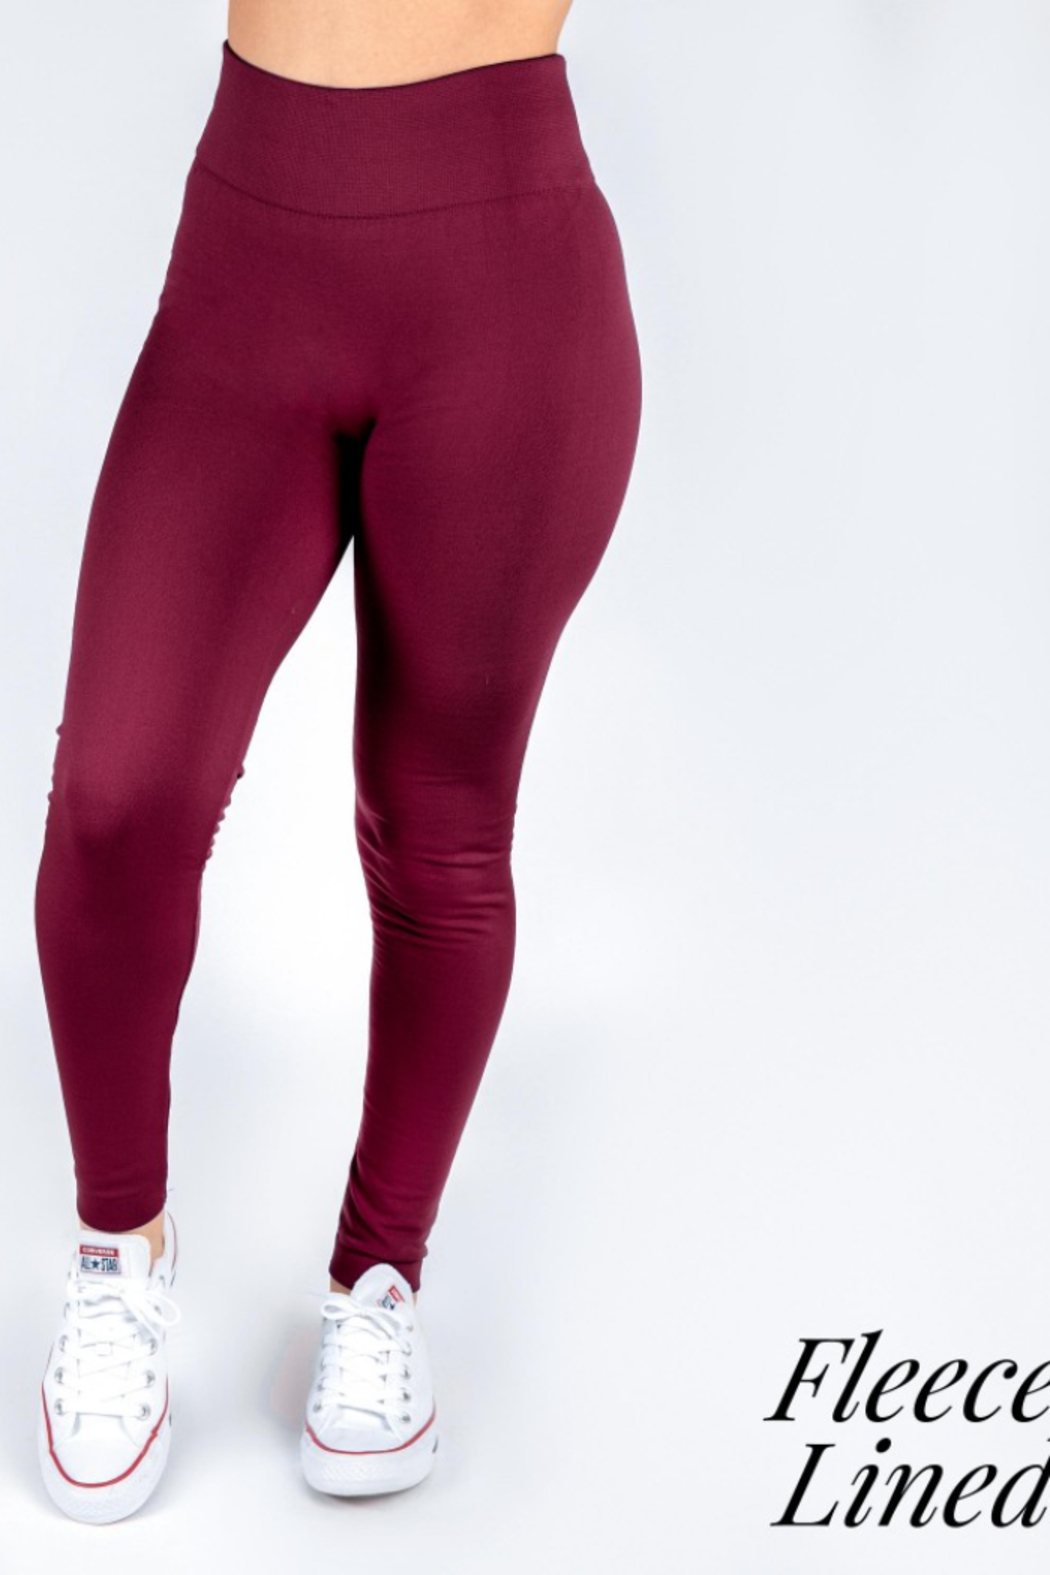 New Mix Women's Solid Color Seamless Fleece Lined Leggings - Main Image